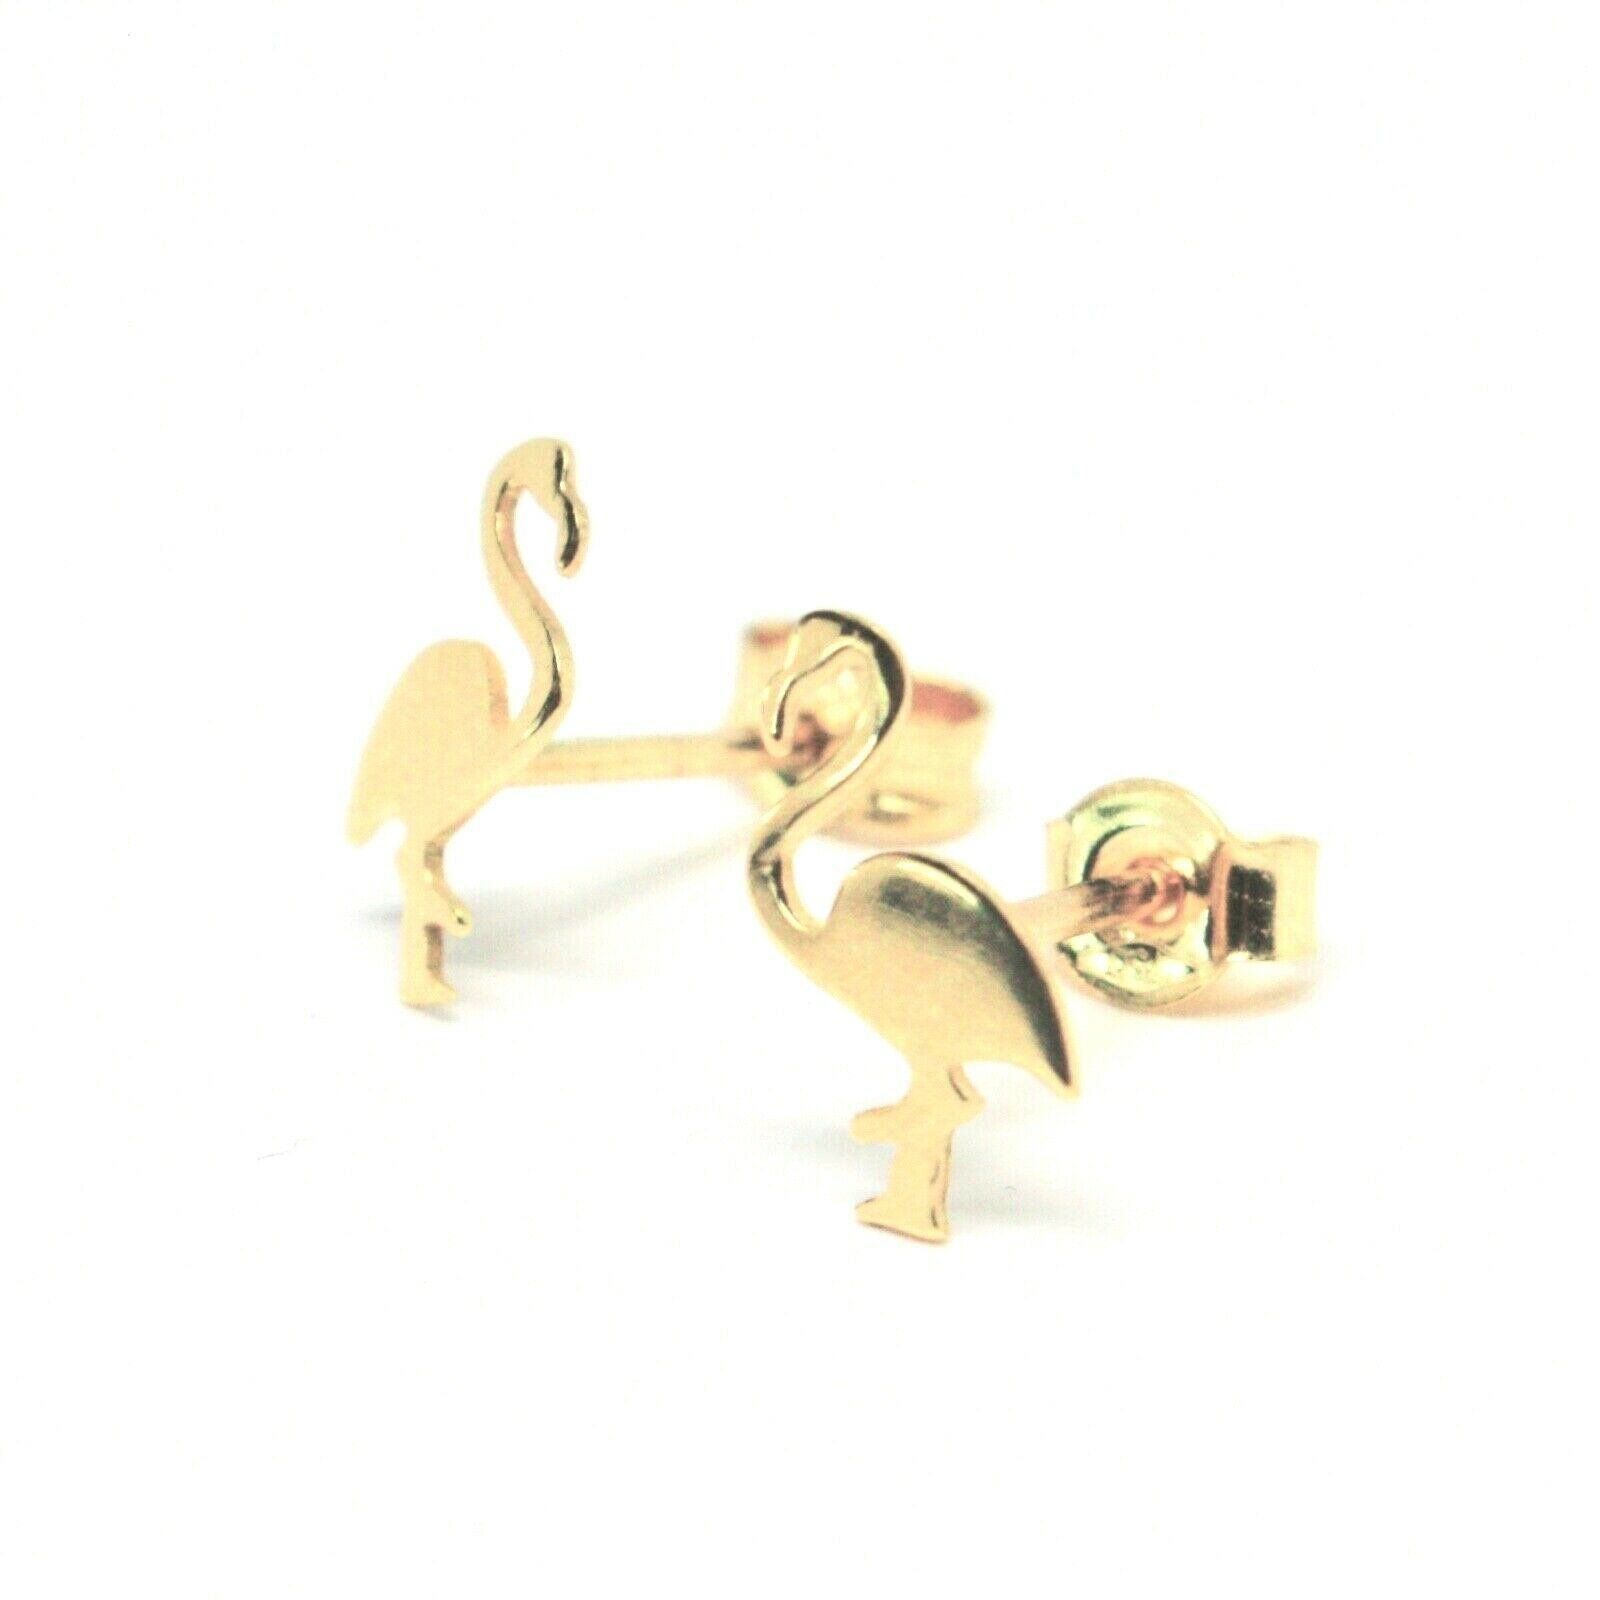 Boucles D'Oreilles or 18K 750 en Forme de Flamant Plaque Brillante Made Italie